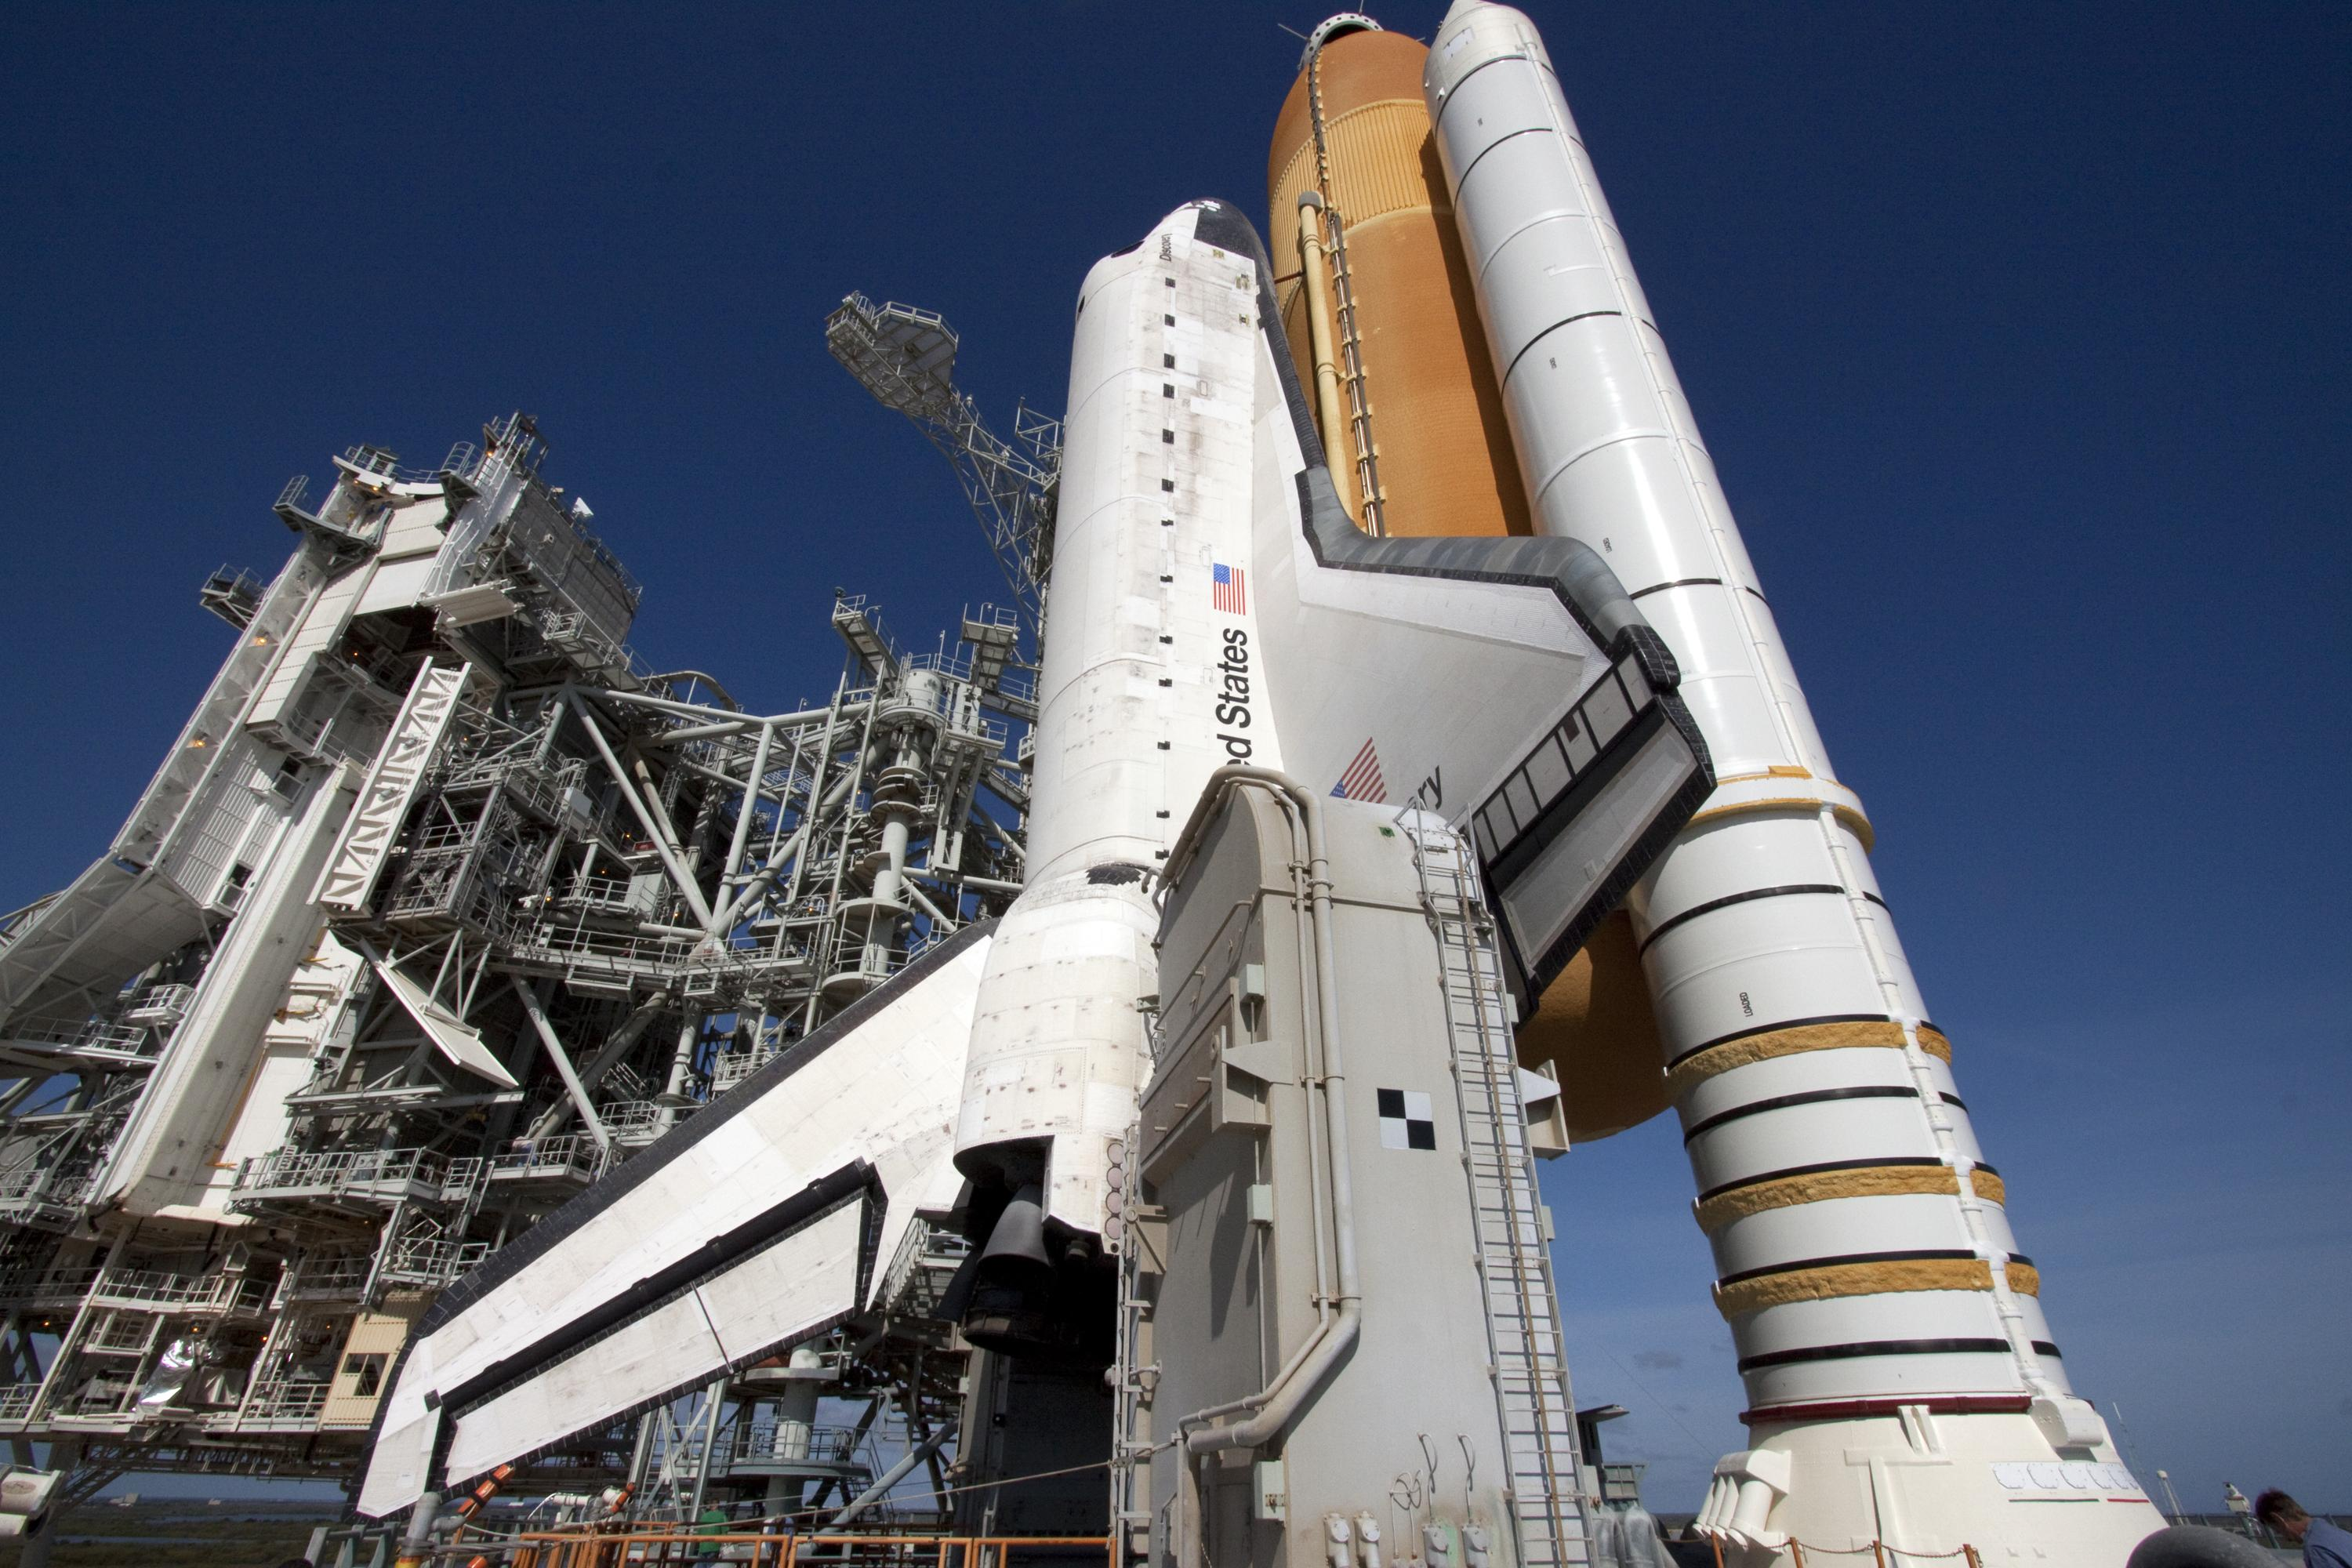 erste space shuttle mission - photo #4